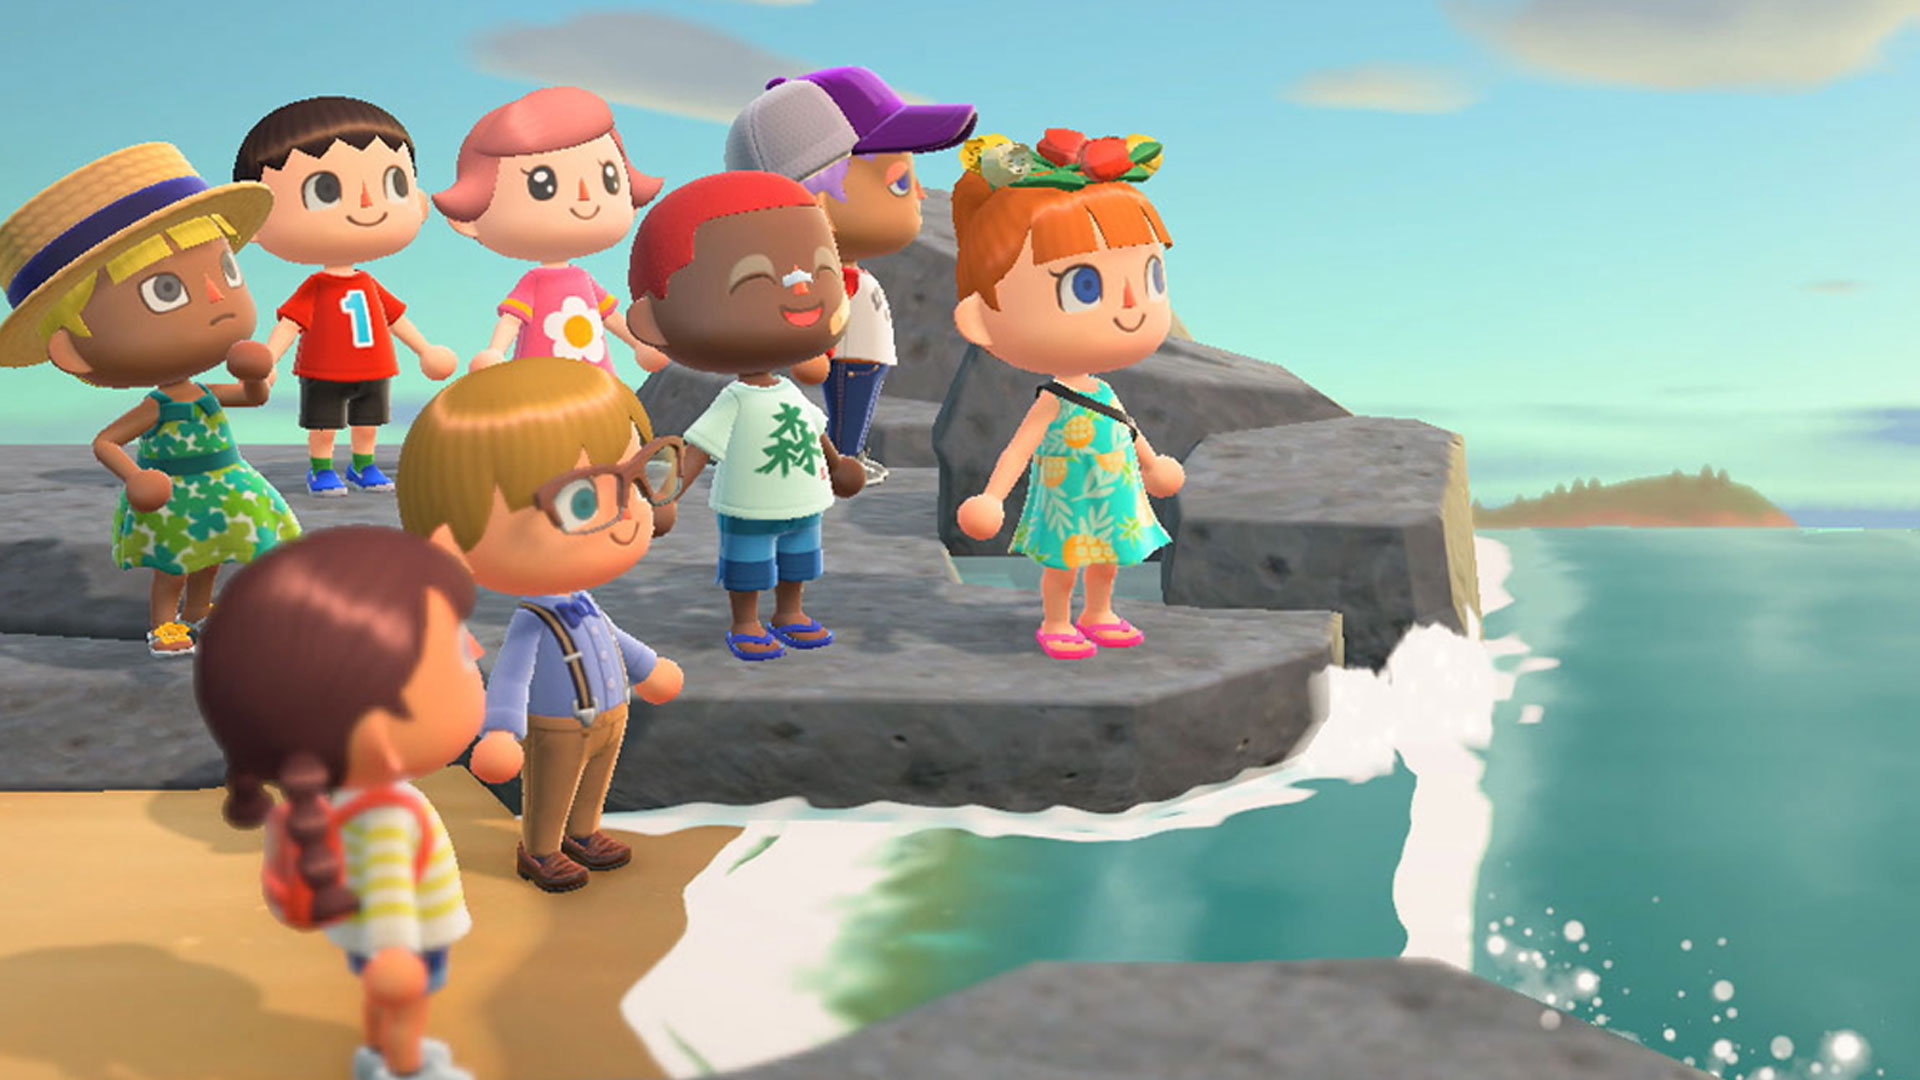 Famous painting animal crossing new horizons